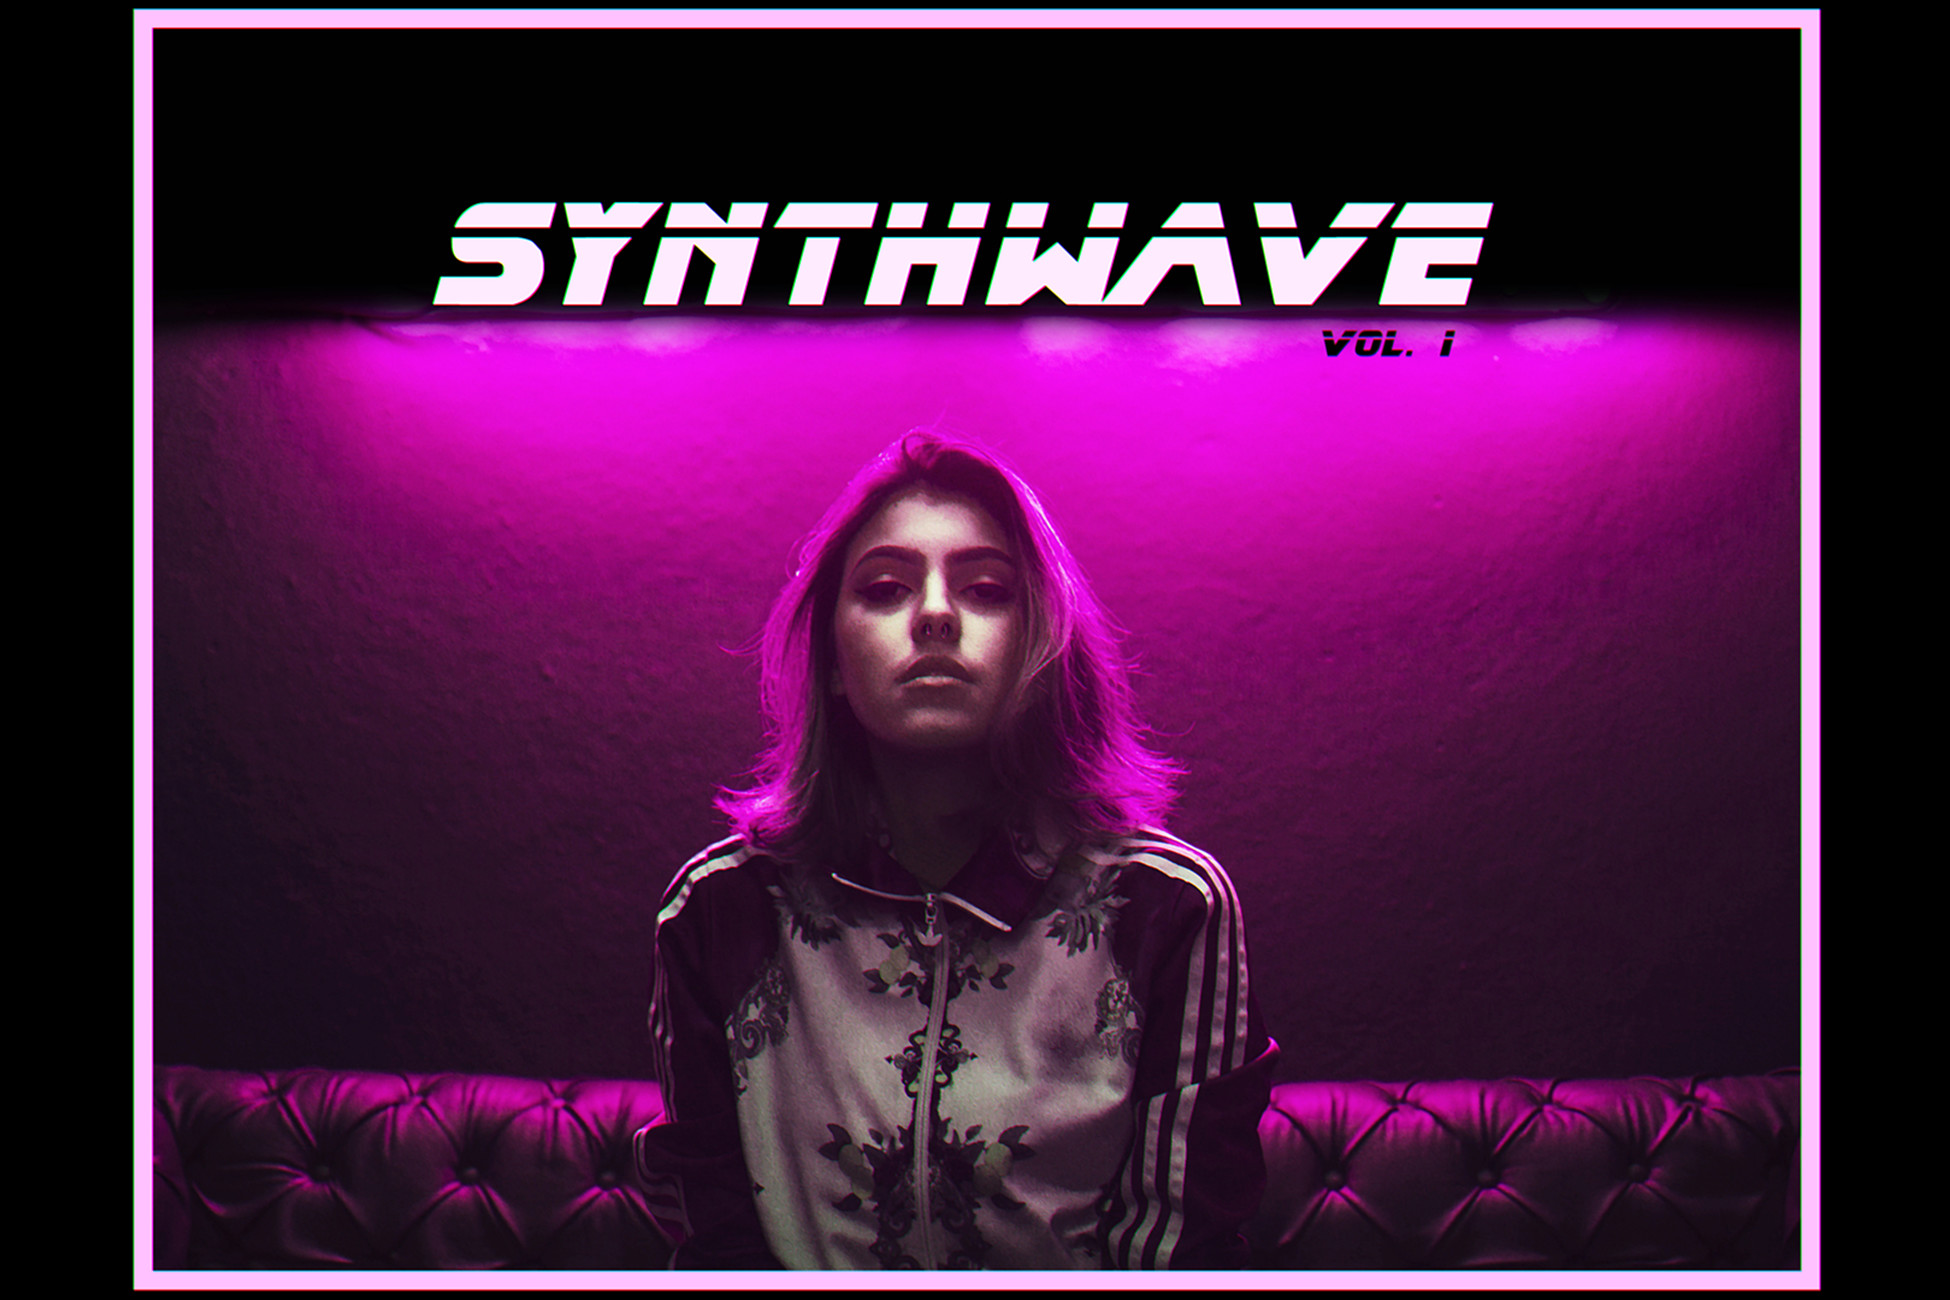 Synthwave Vol. I